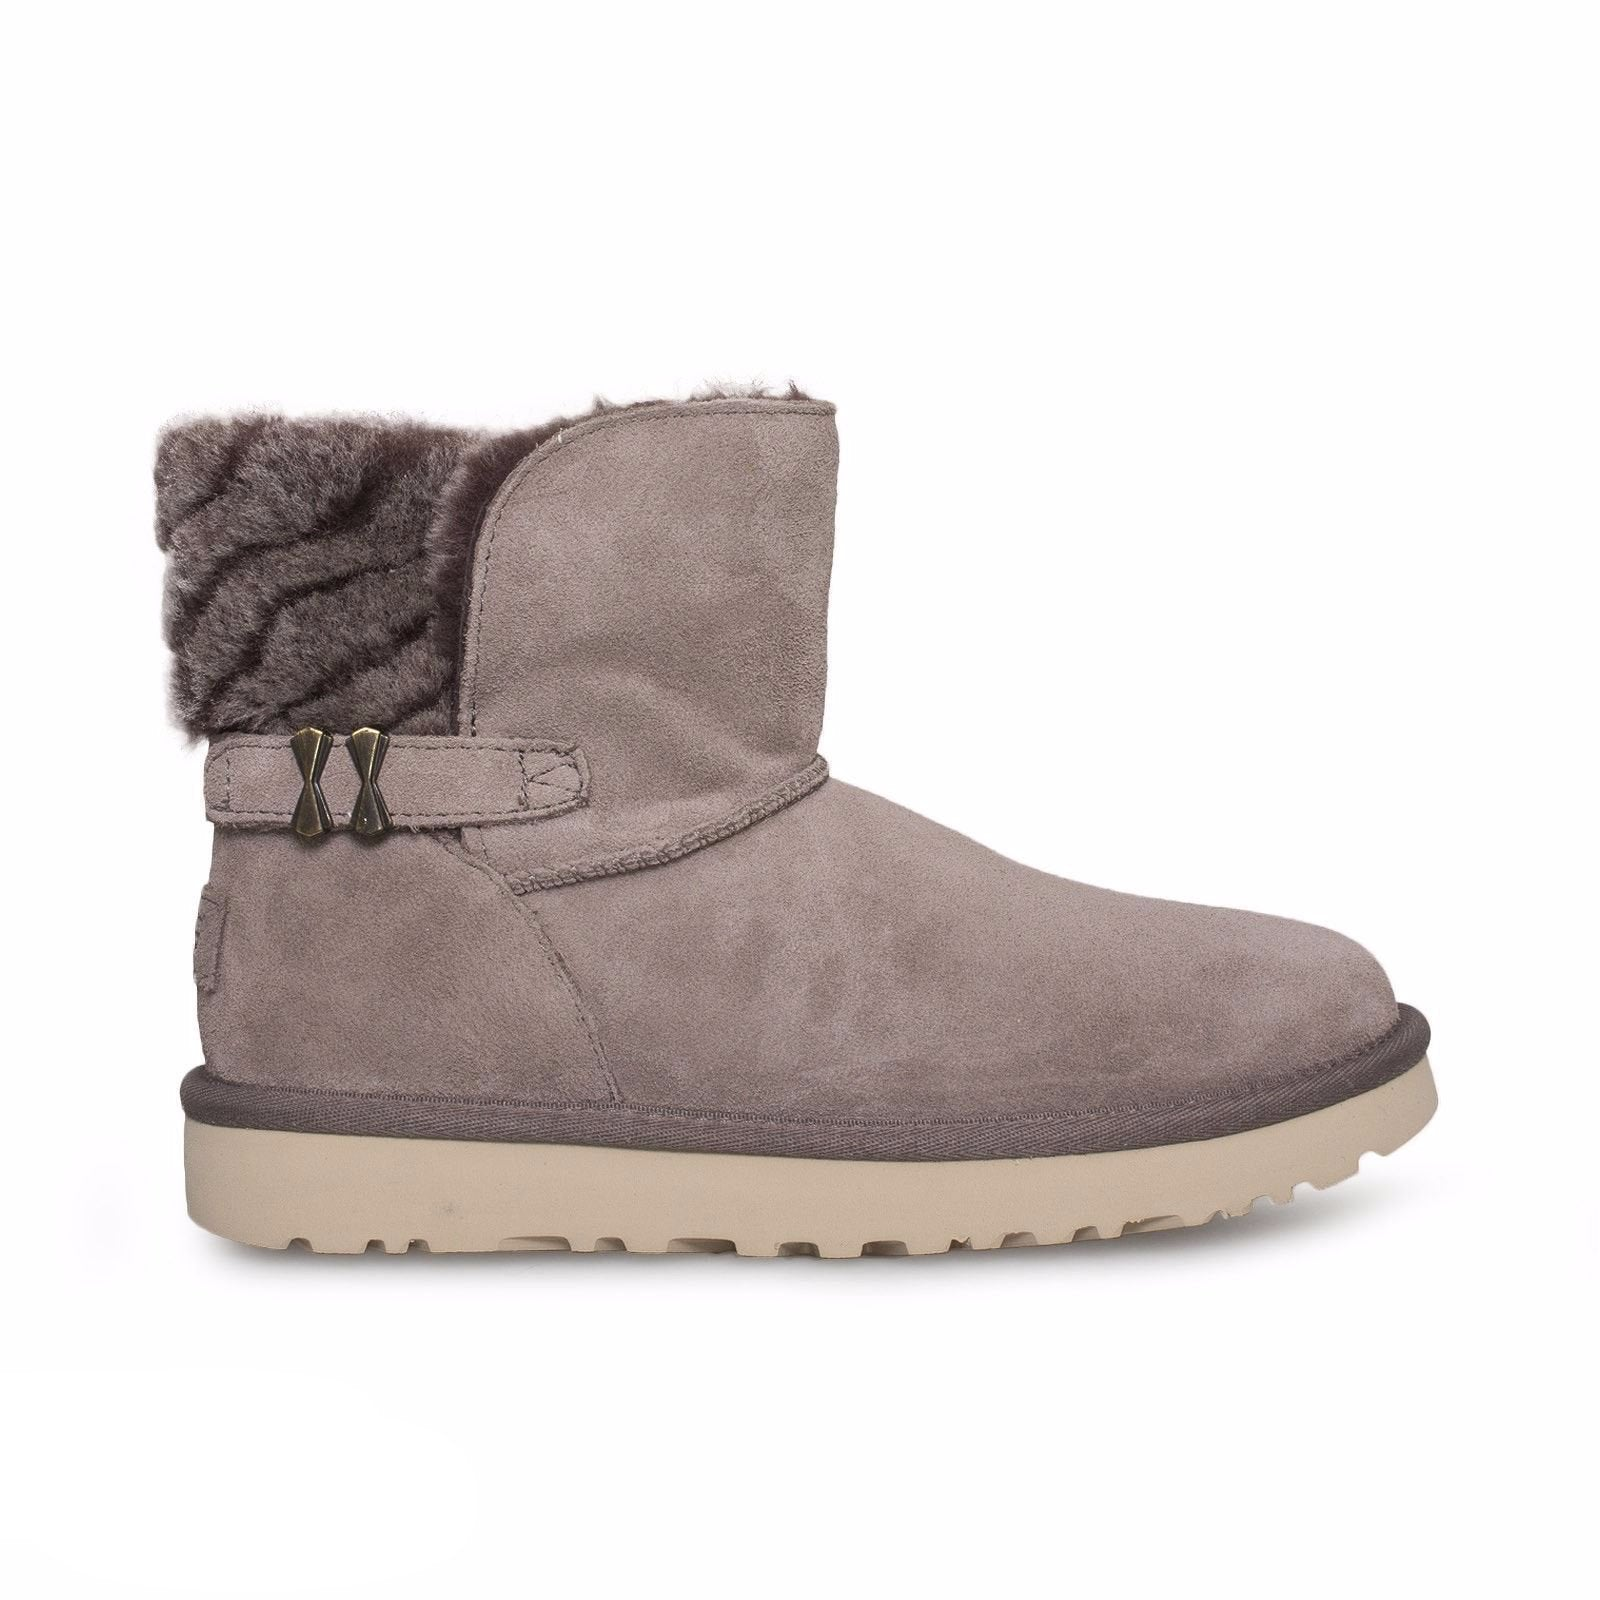 a51a45740c8 UGG Adria Stormy Grey Boots